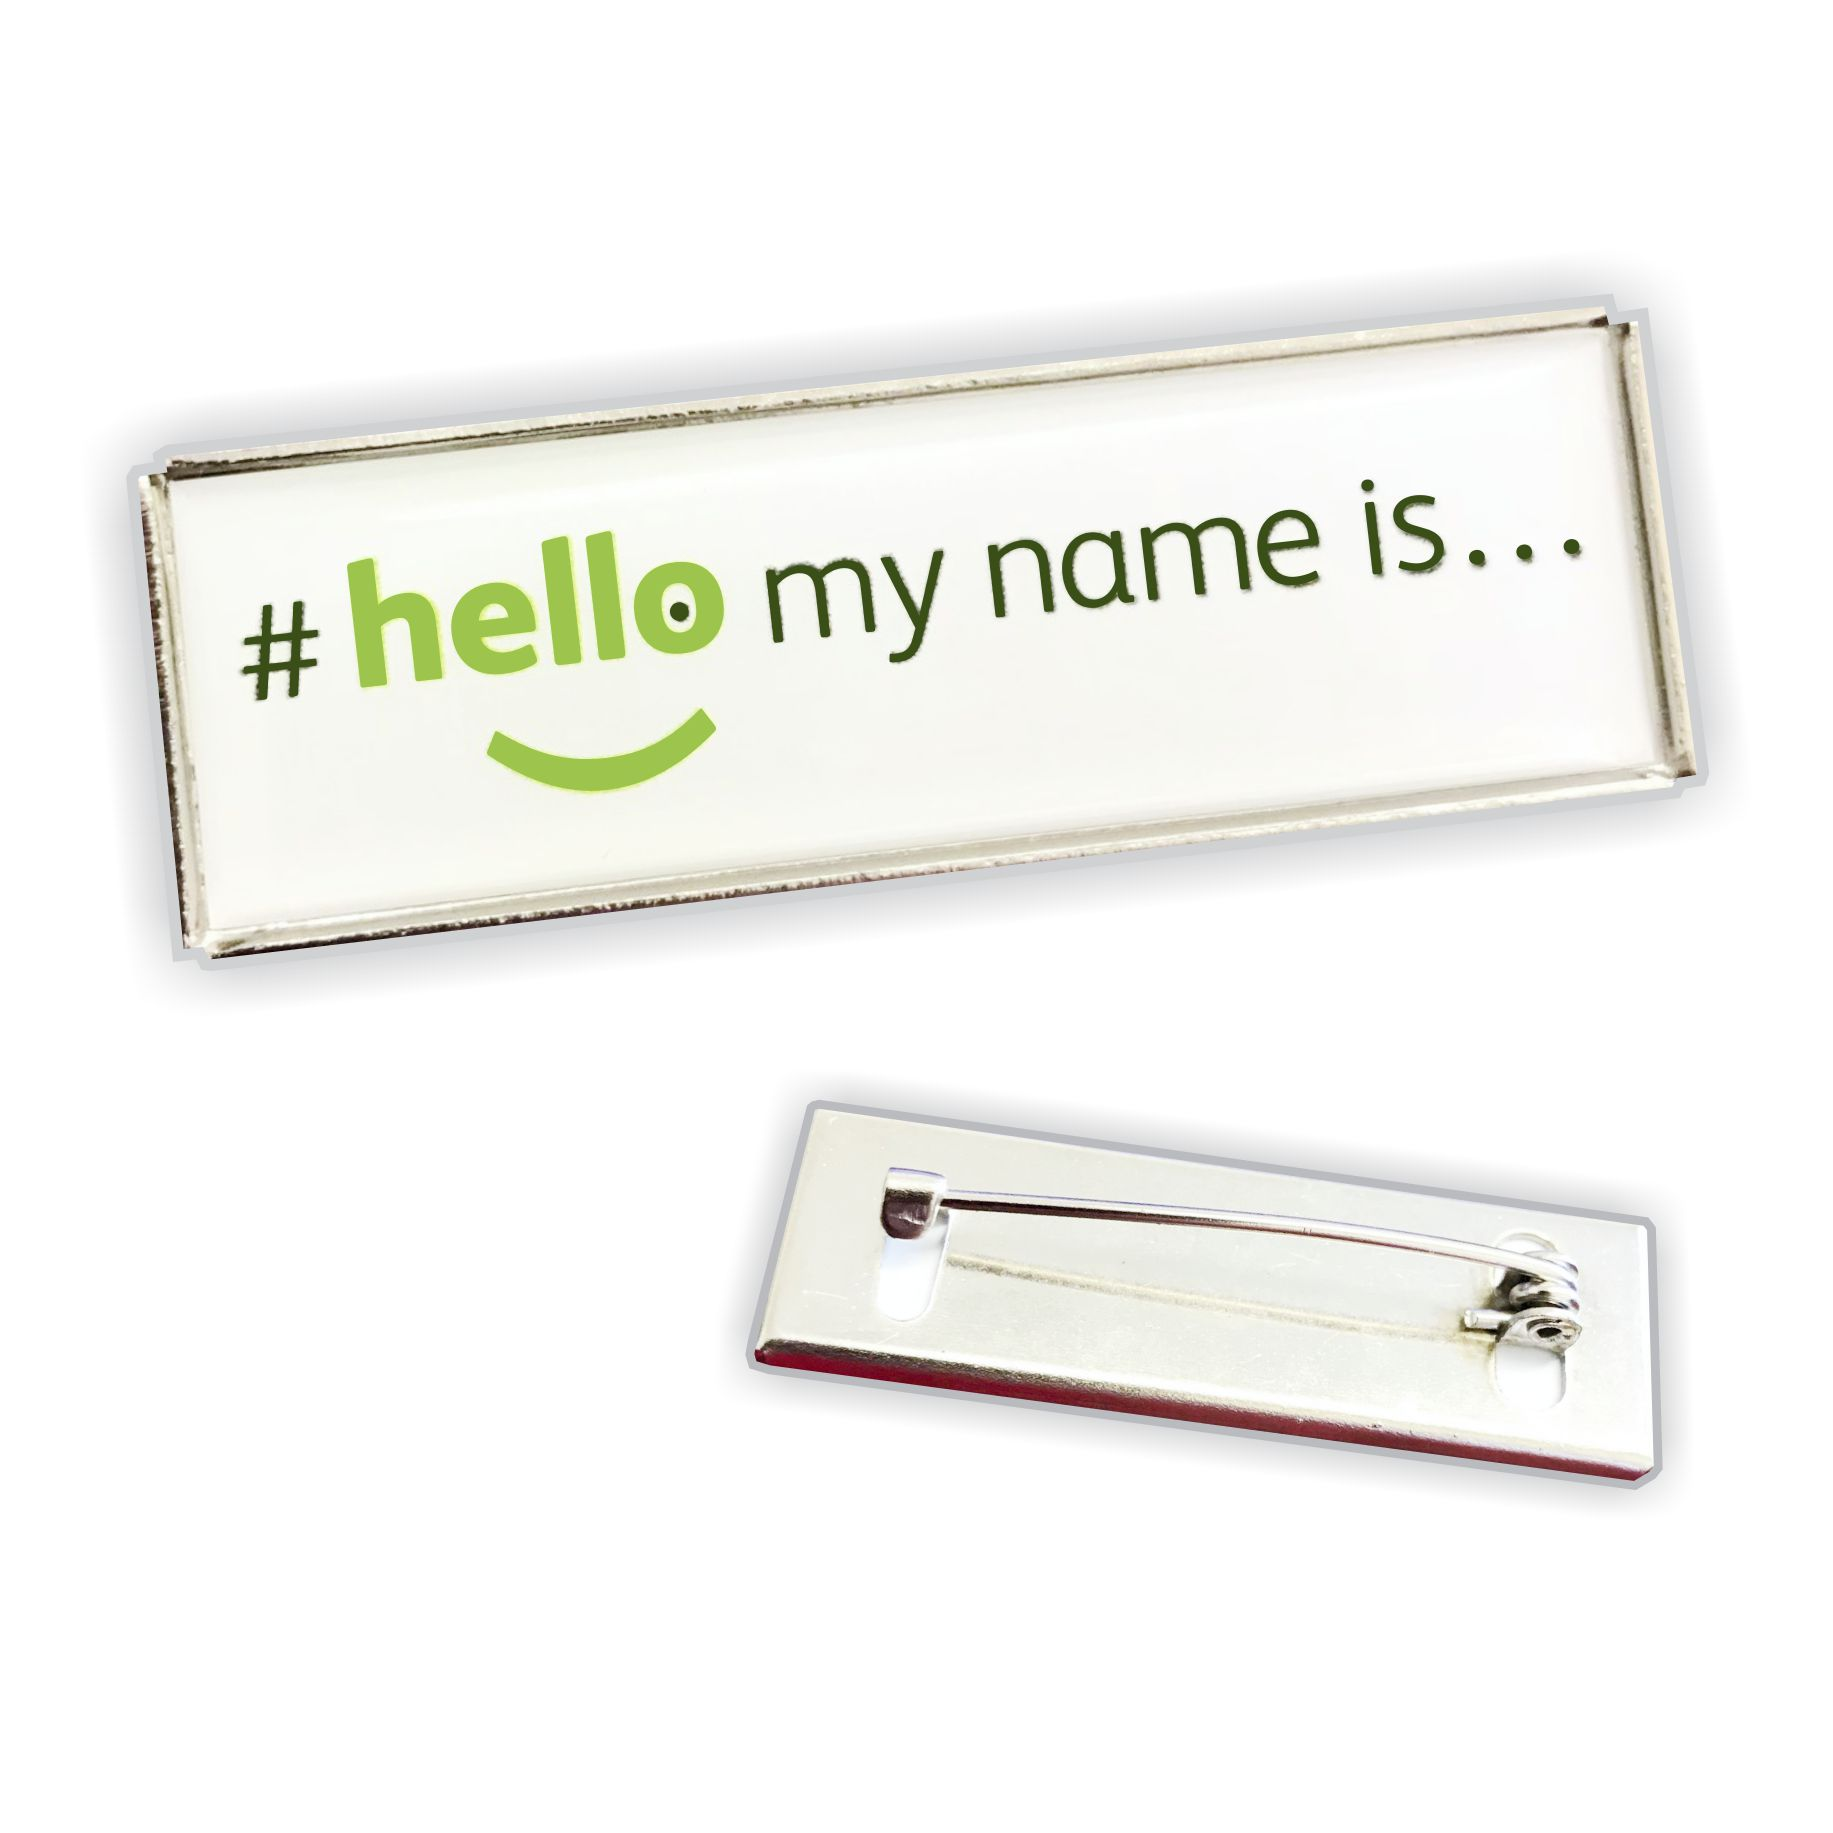 hello my name is lapel pin badge